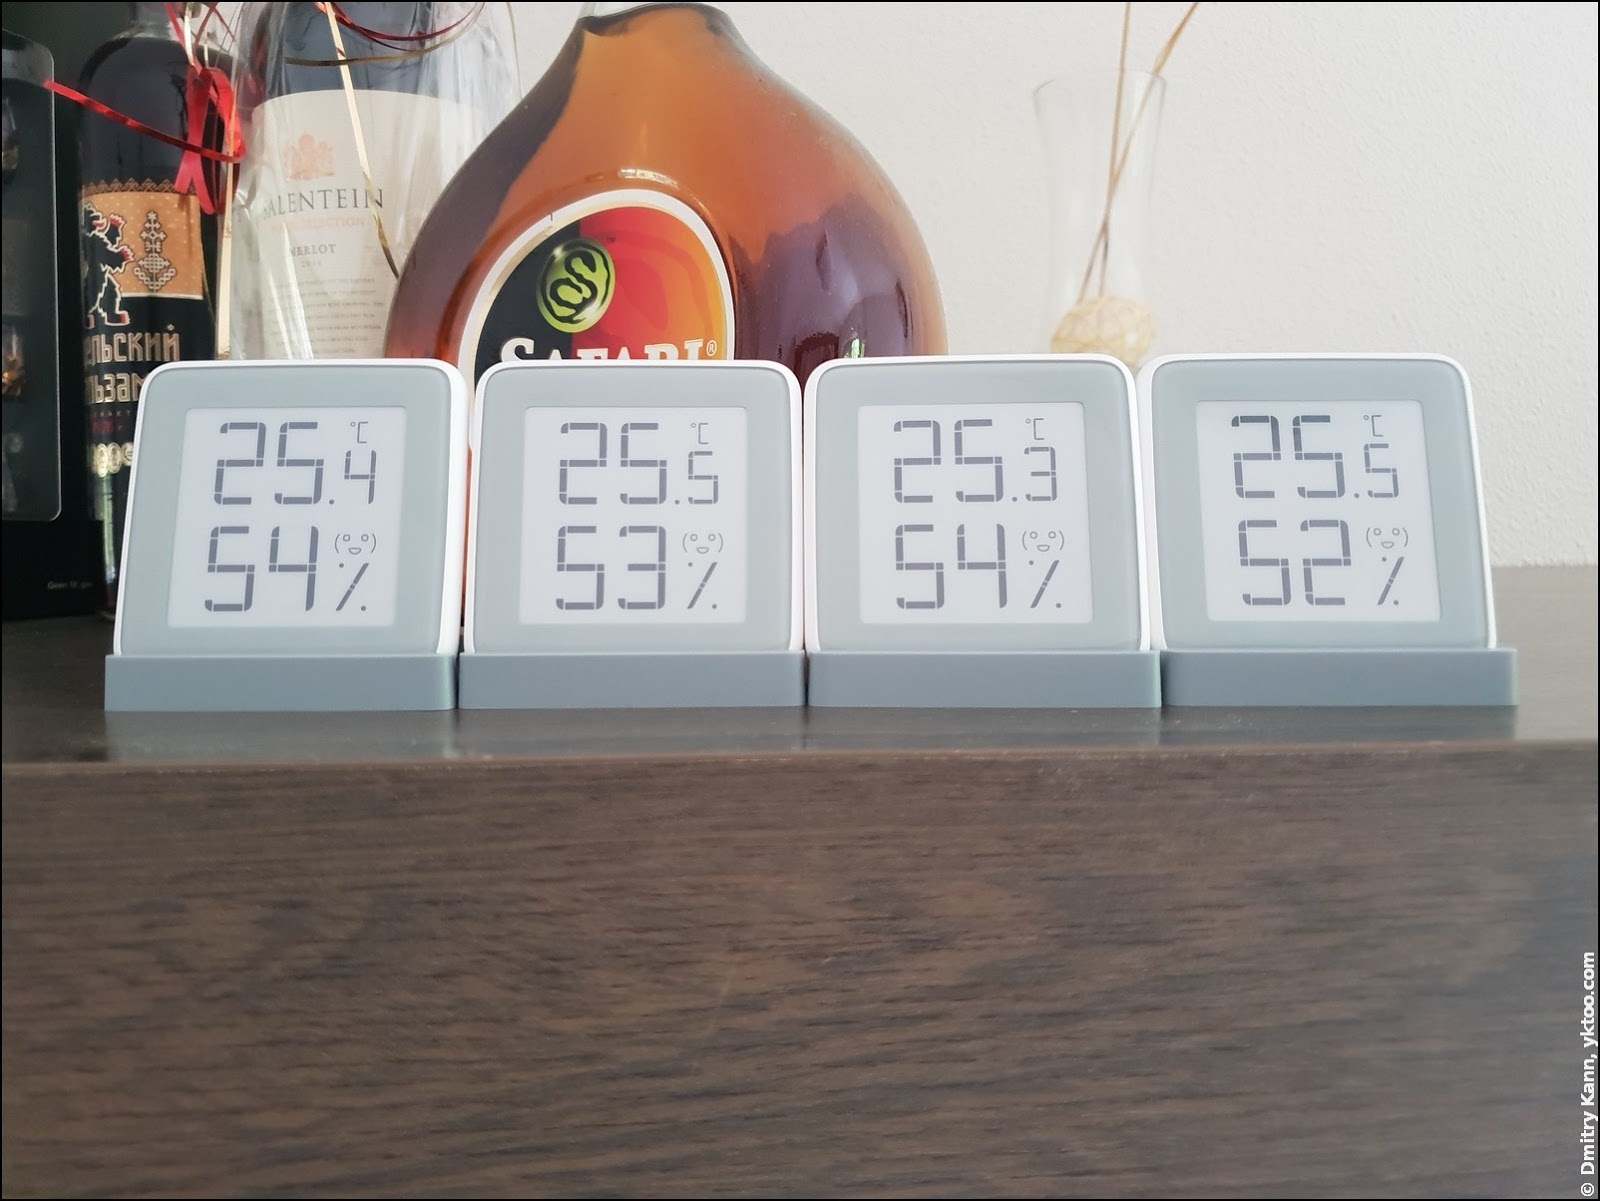 The readings of all four thermometers are pretty closely aligned.